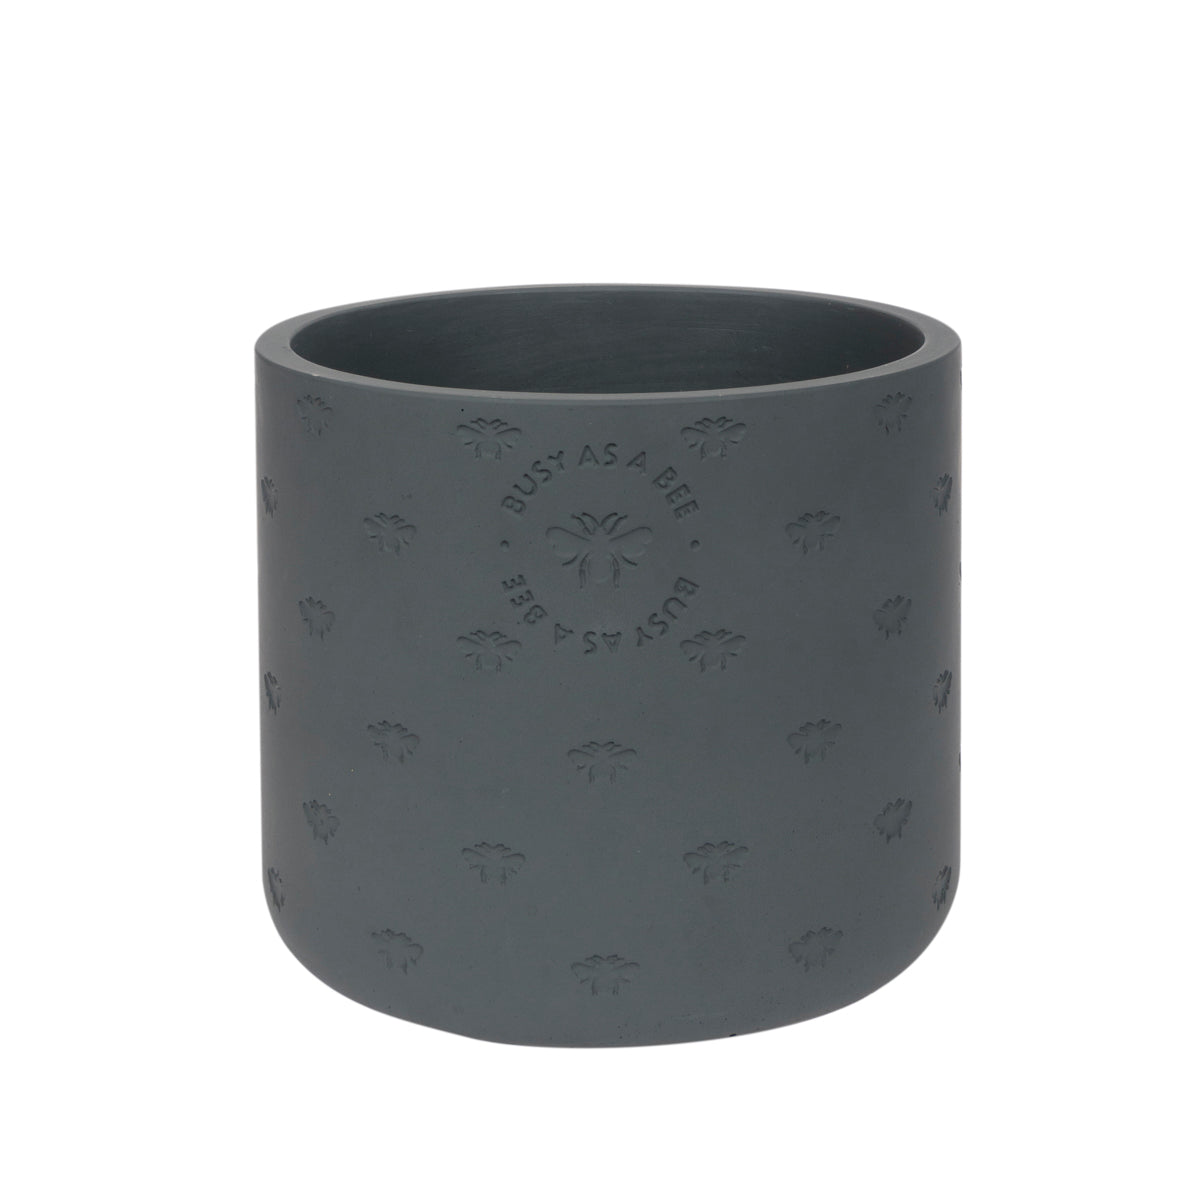 Medium grey cement plant pot by Sophie Allport in her bee design.